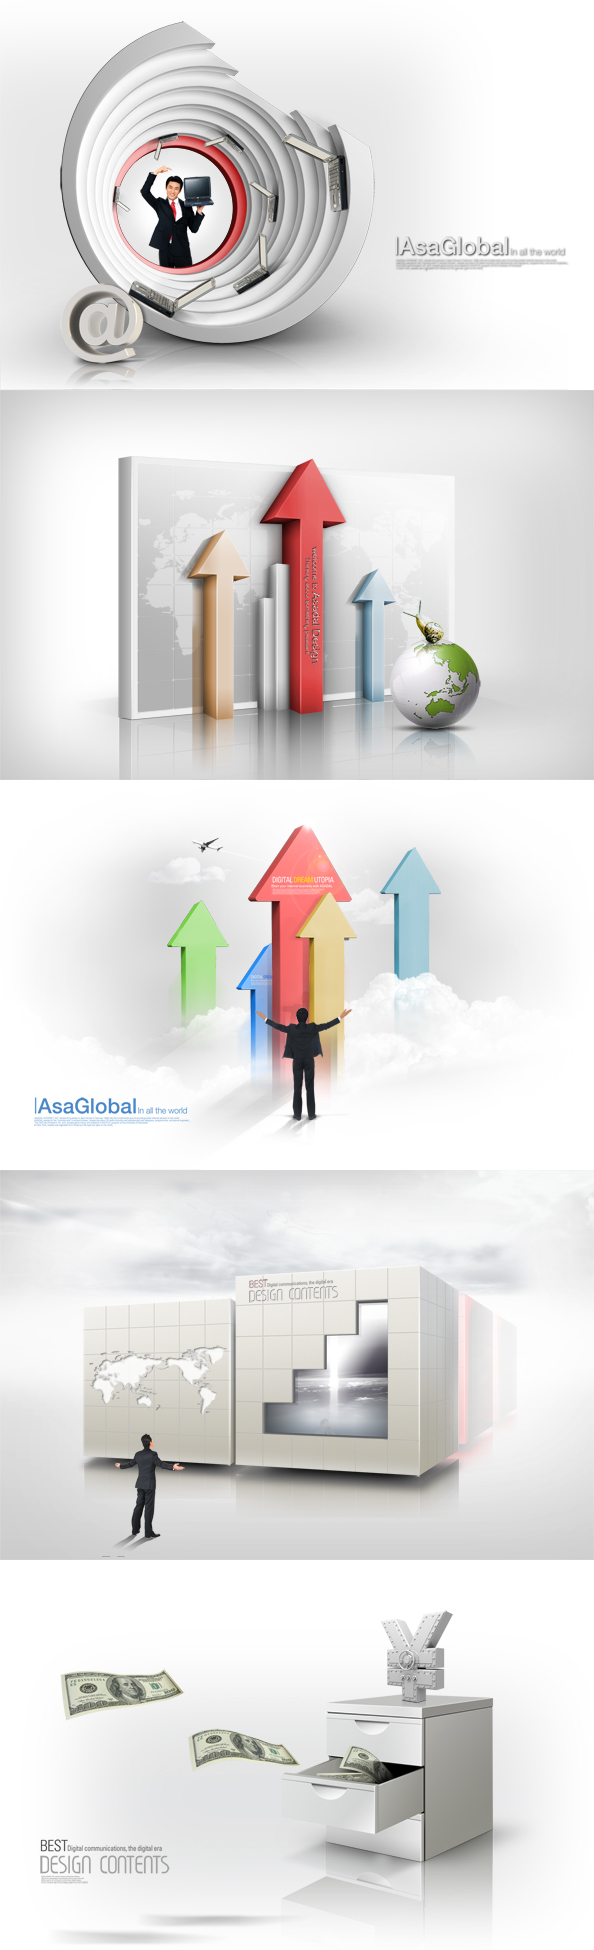 free psd business backgrounds